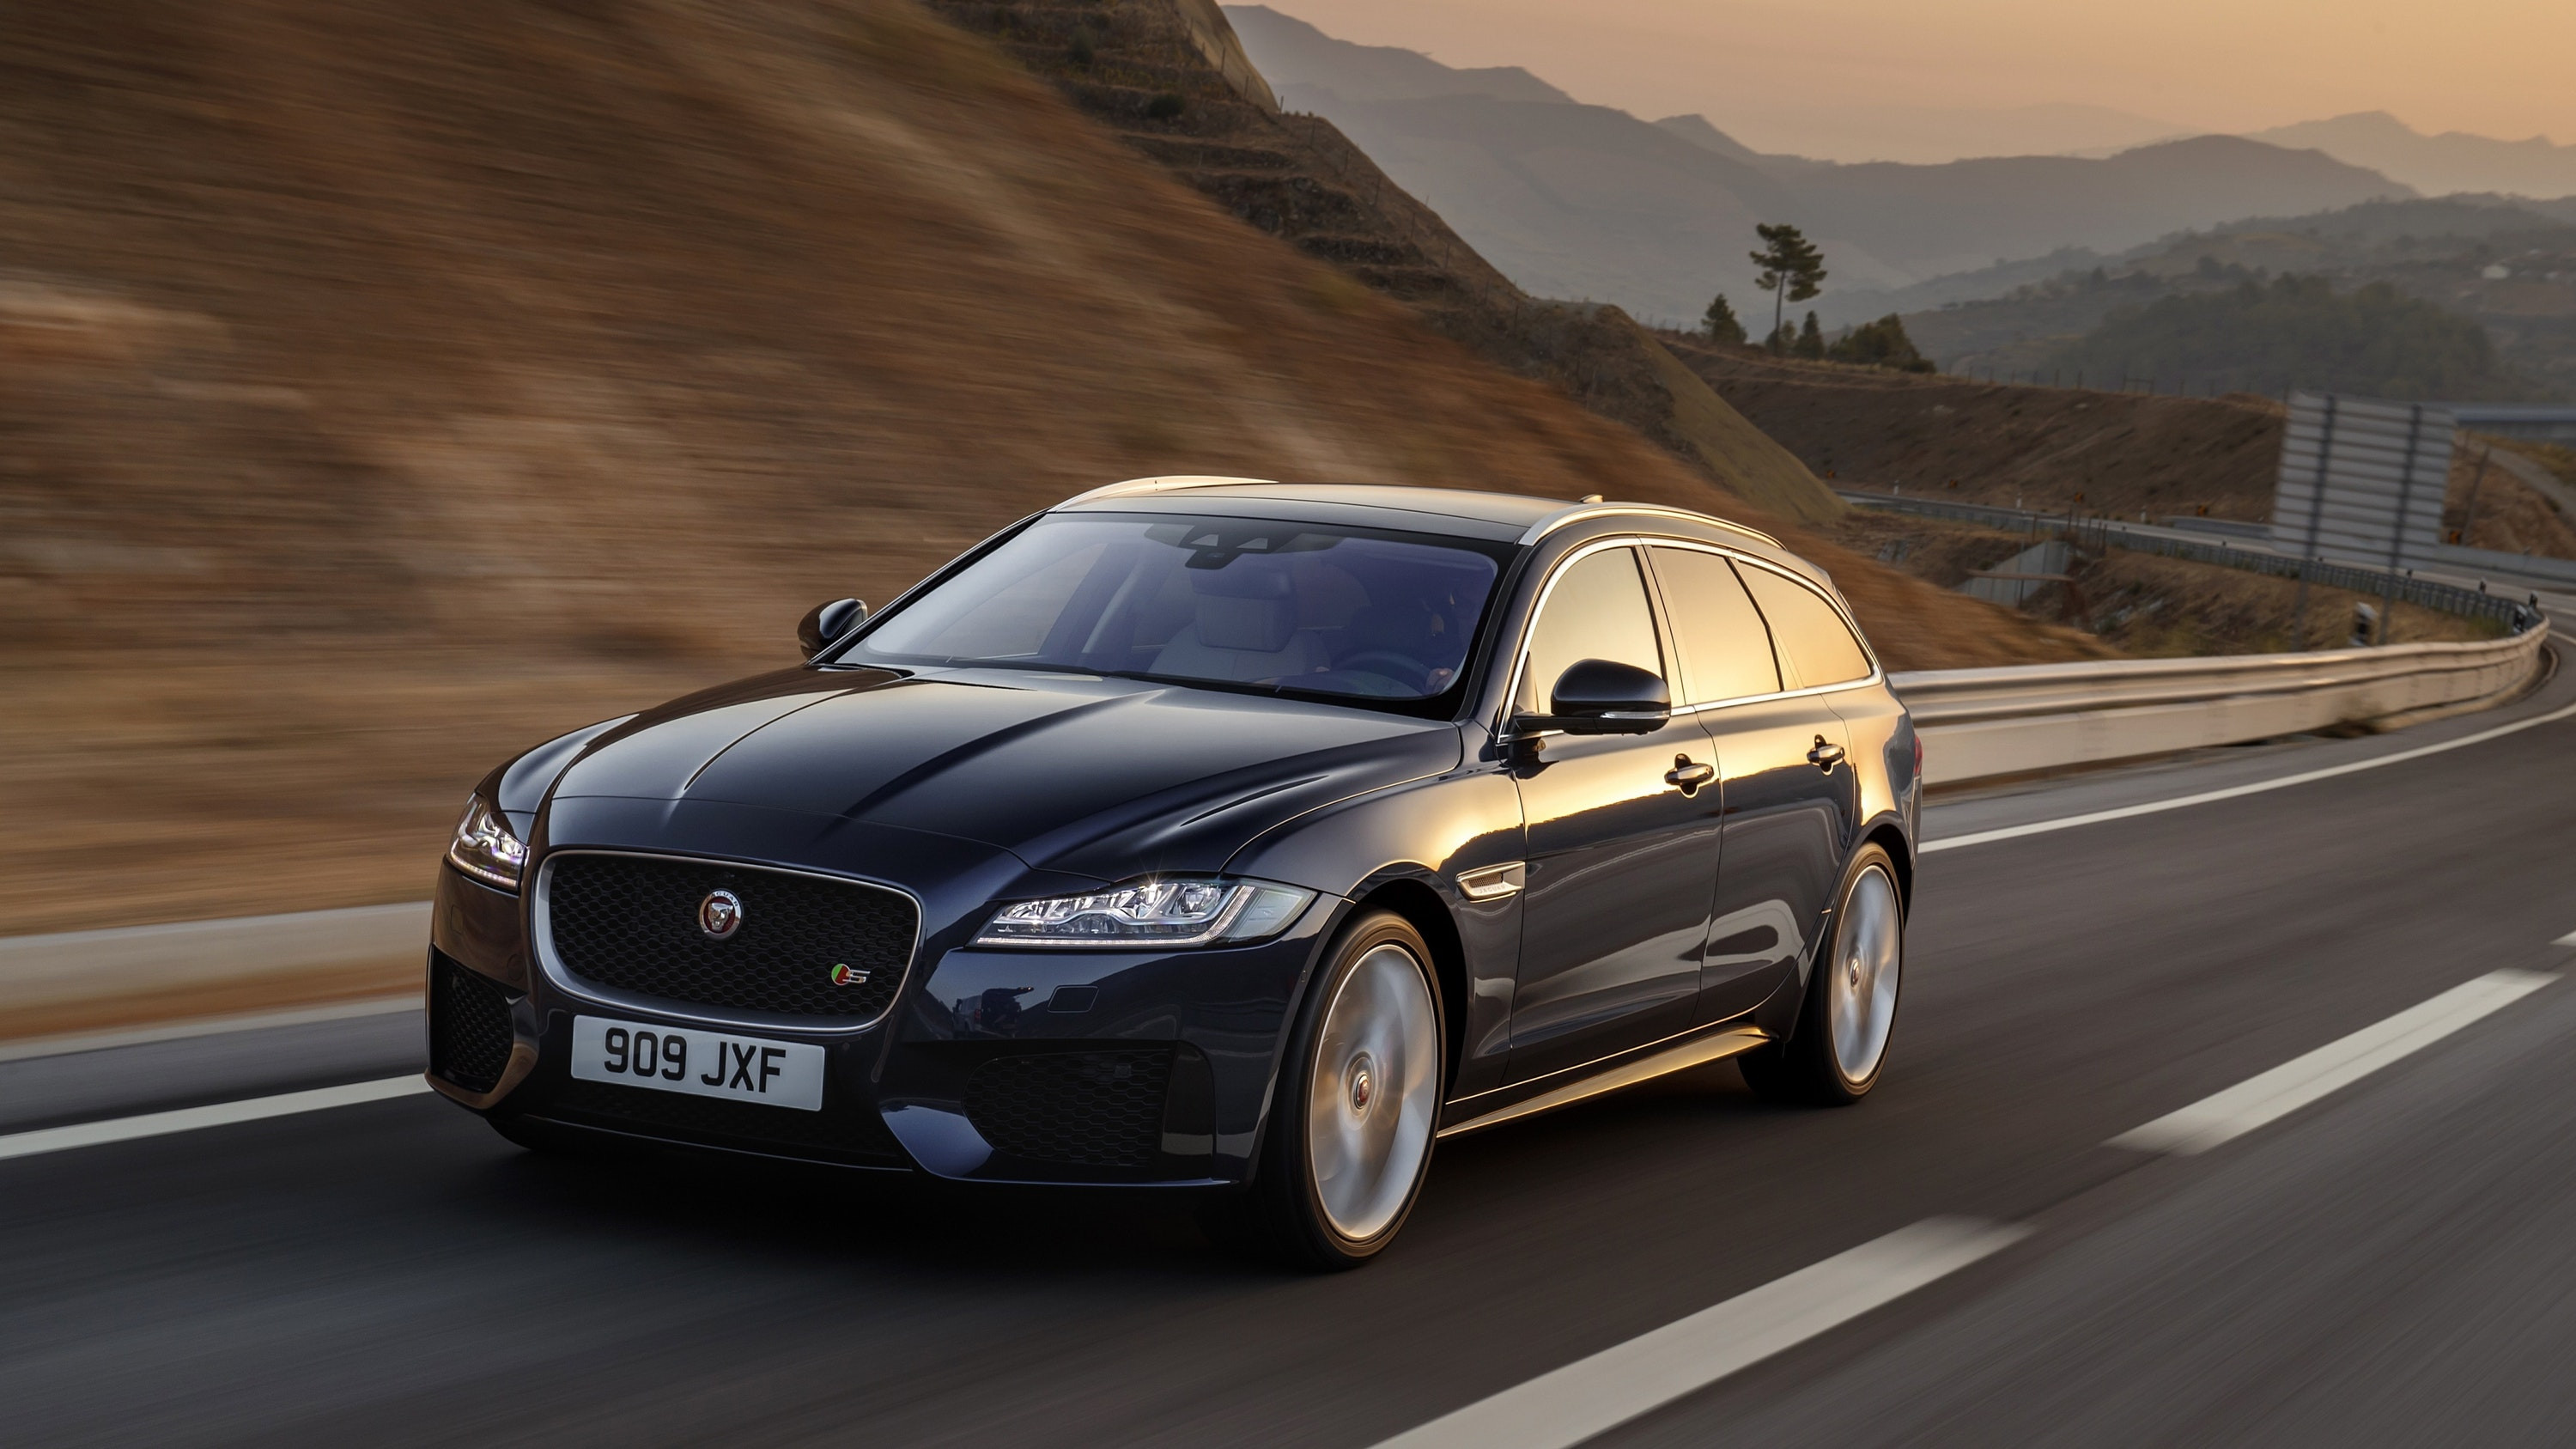 Jaguar XF Sportbrake moving at speed at dusk